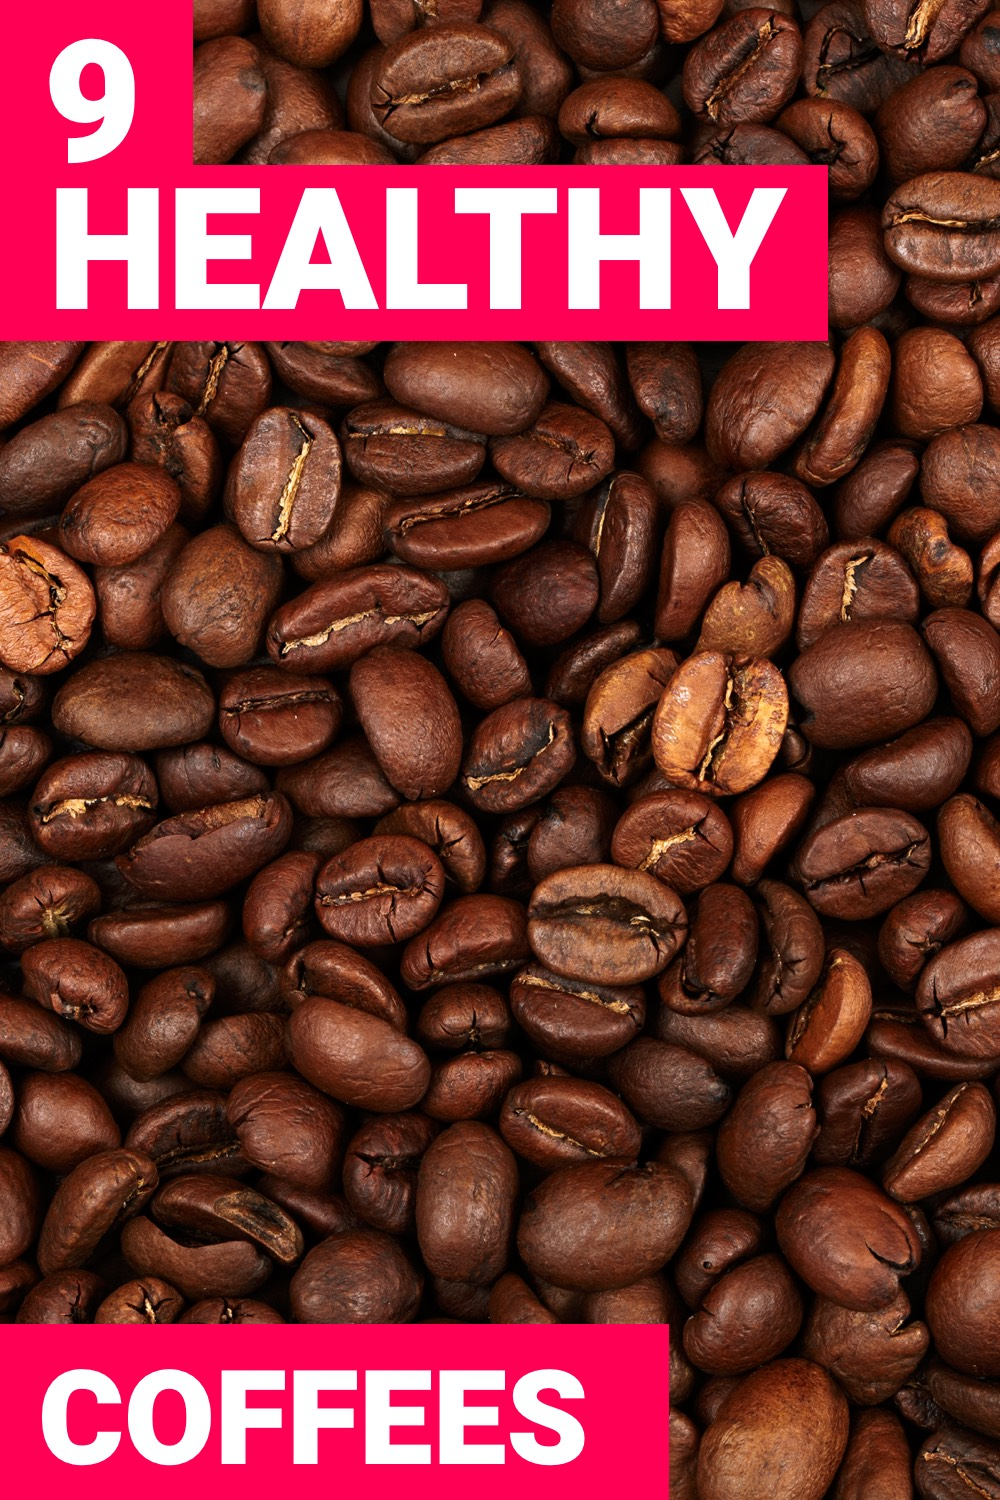 If you want to have healthy coffee every day, it can be done. Here are 9 ways to make healthy coffee.